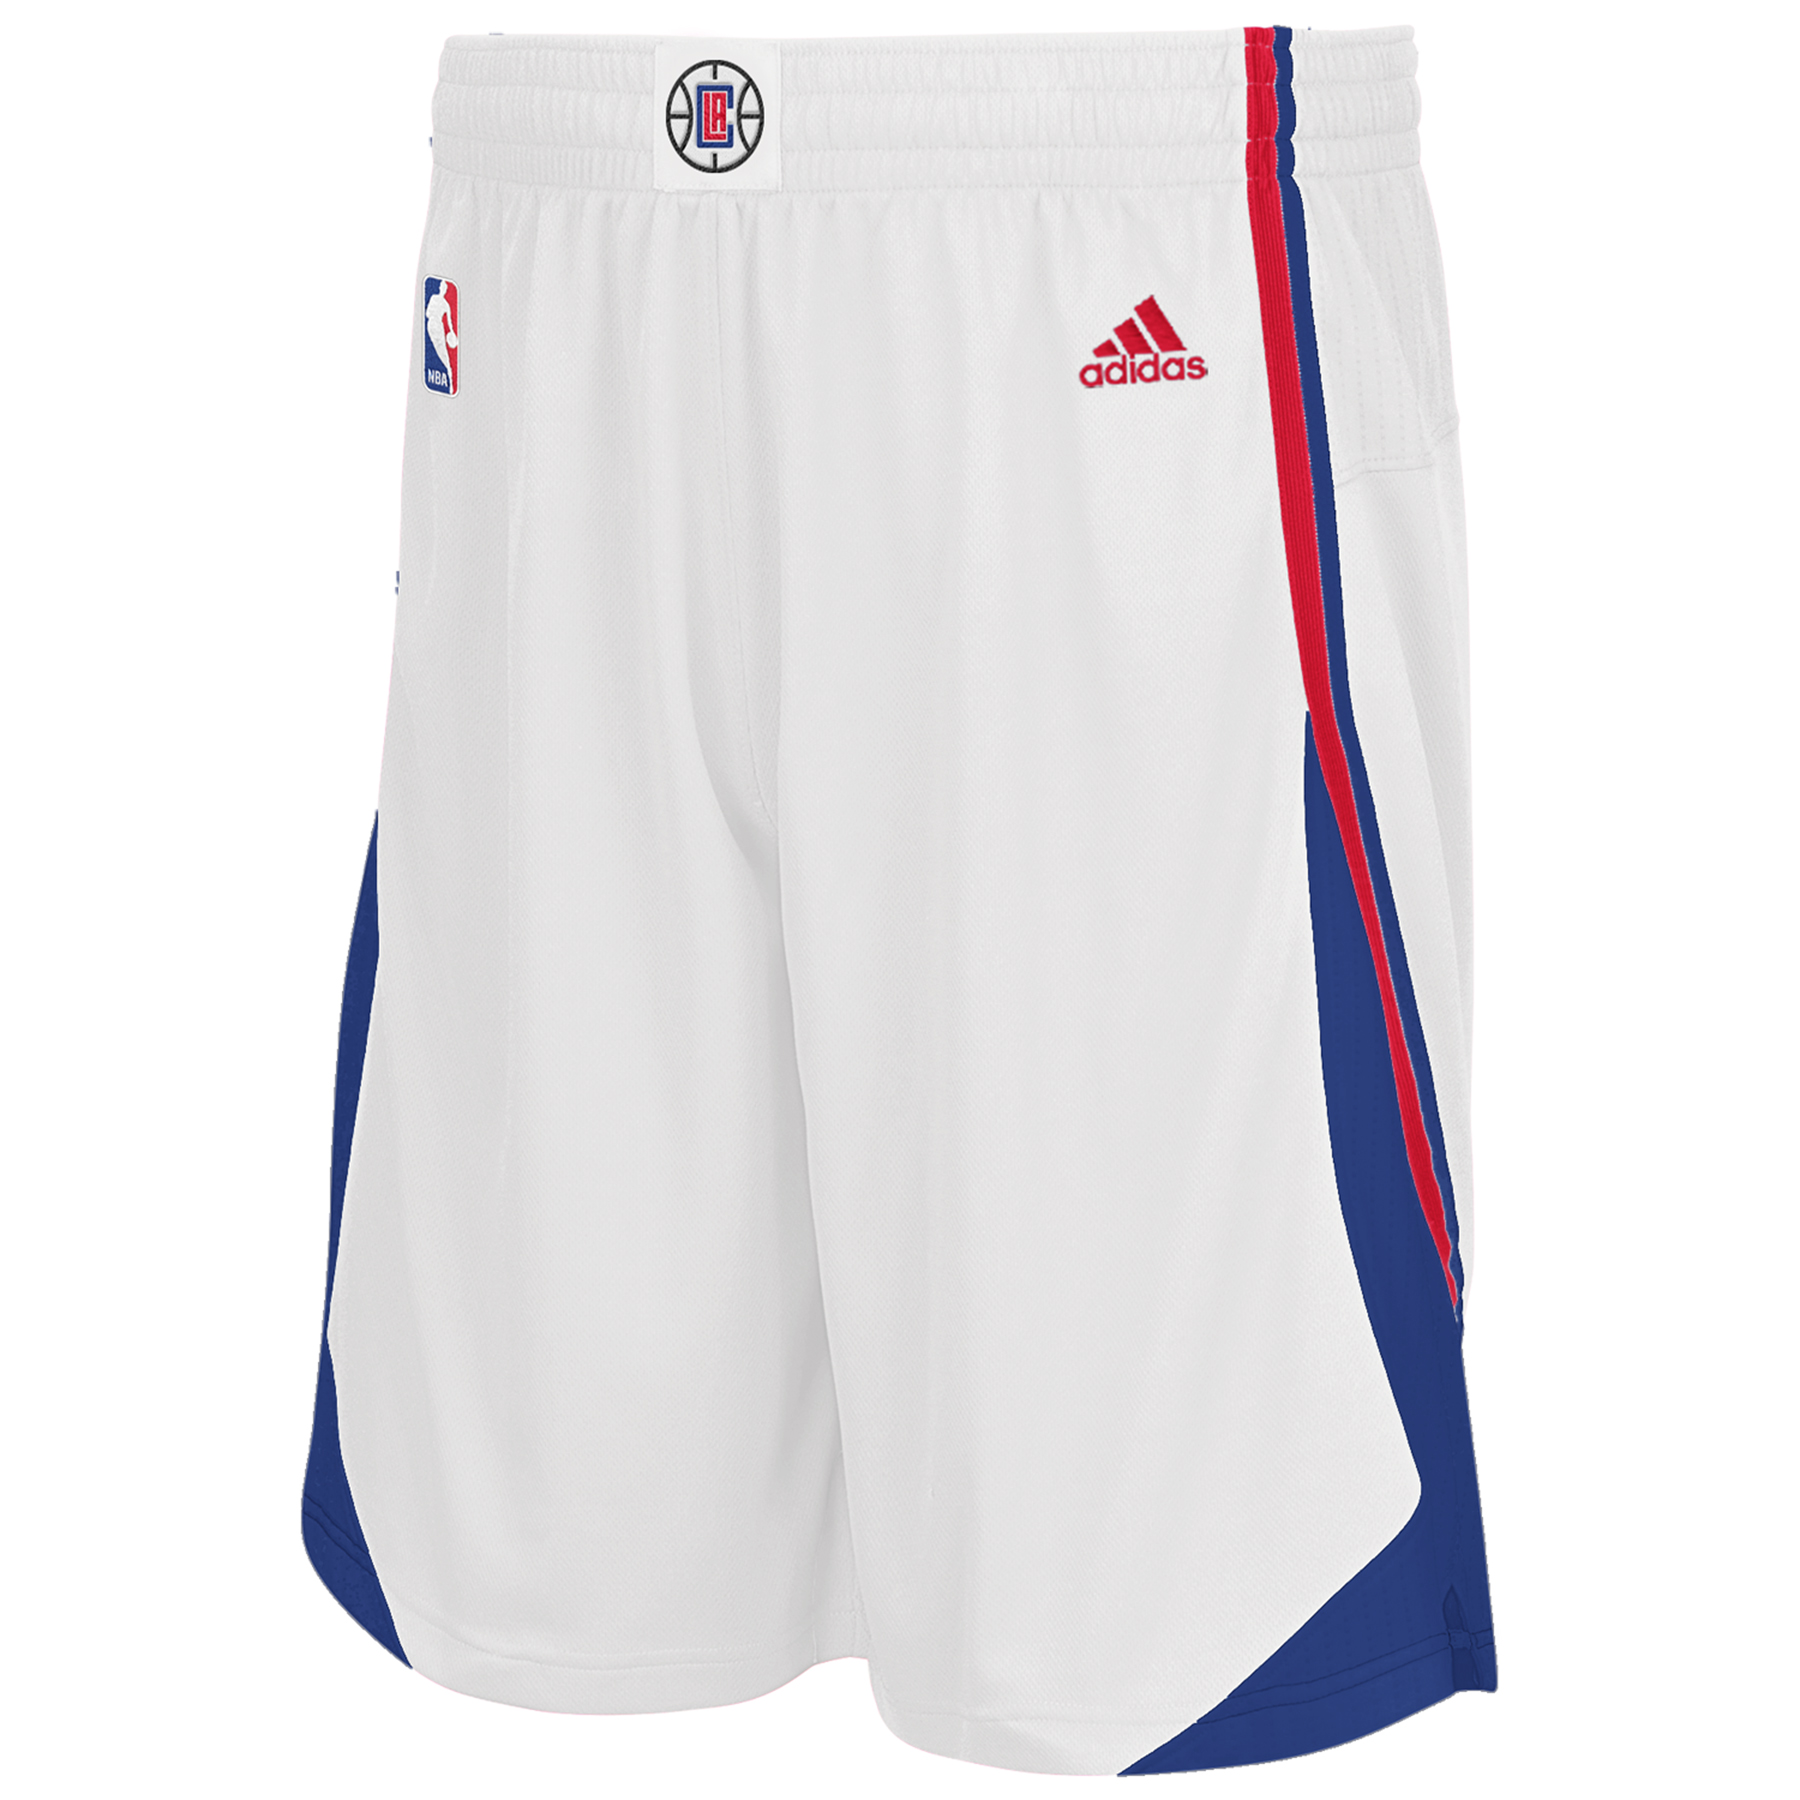 LA Clippers Home Swingman Shorts - Mens